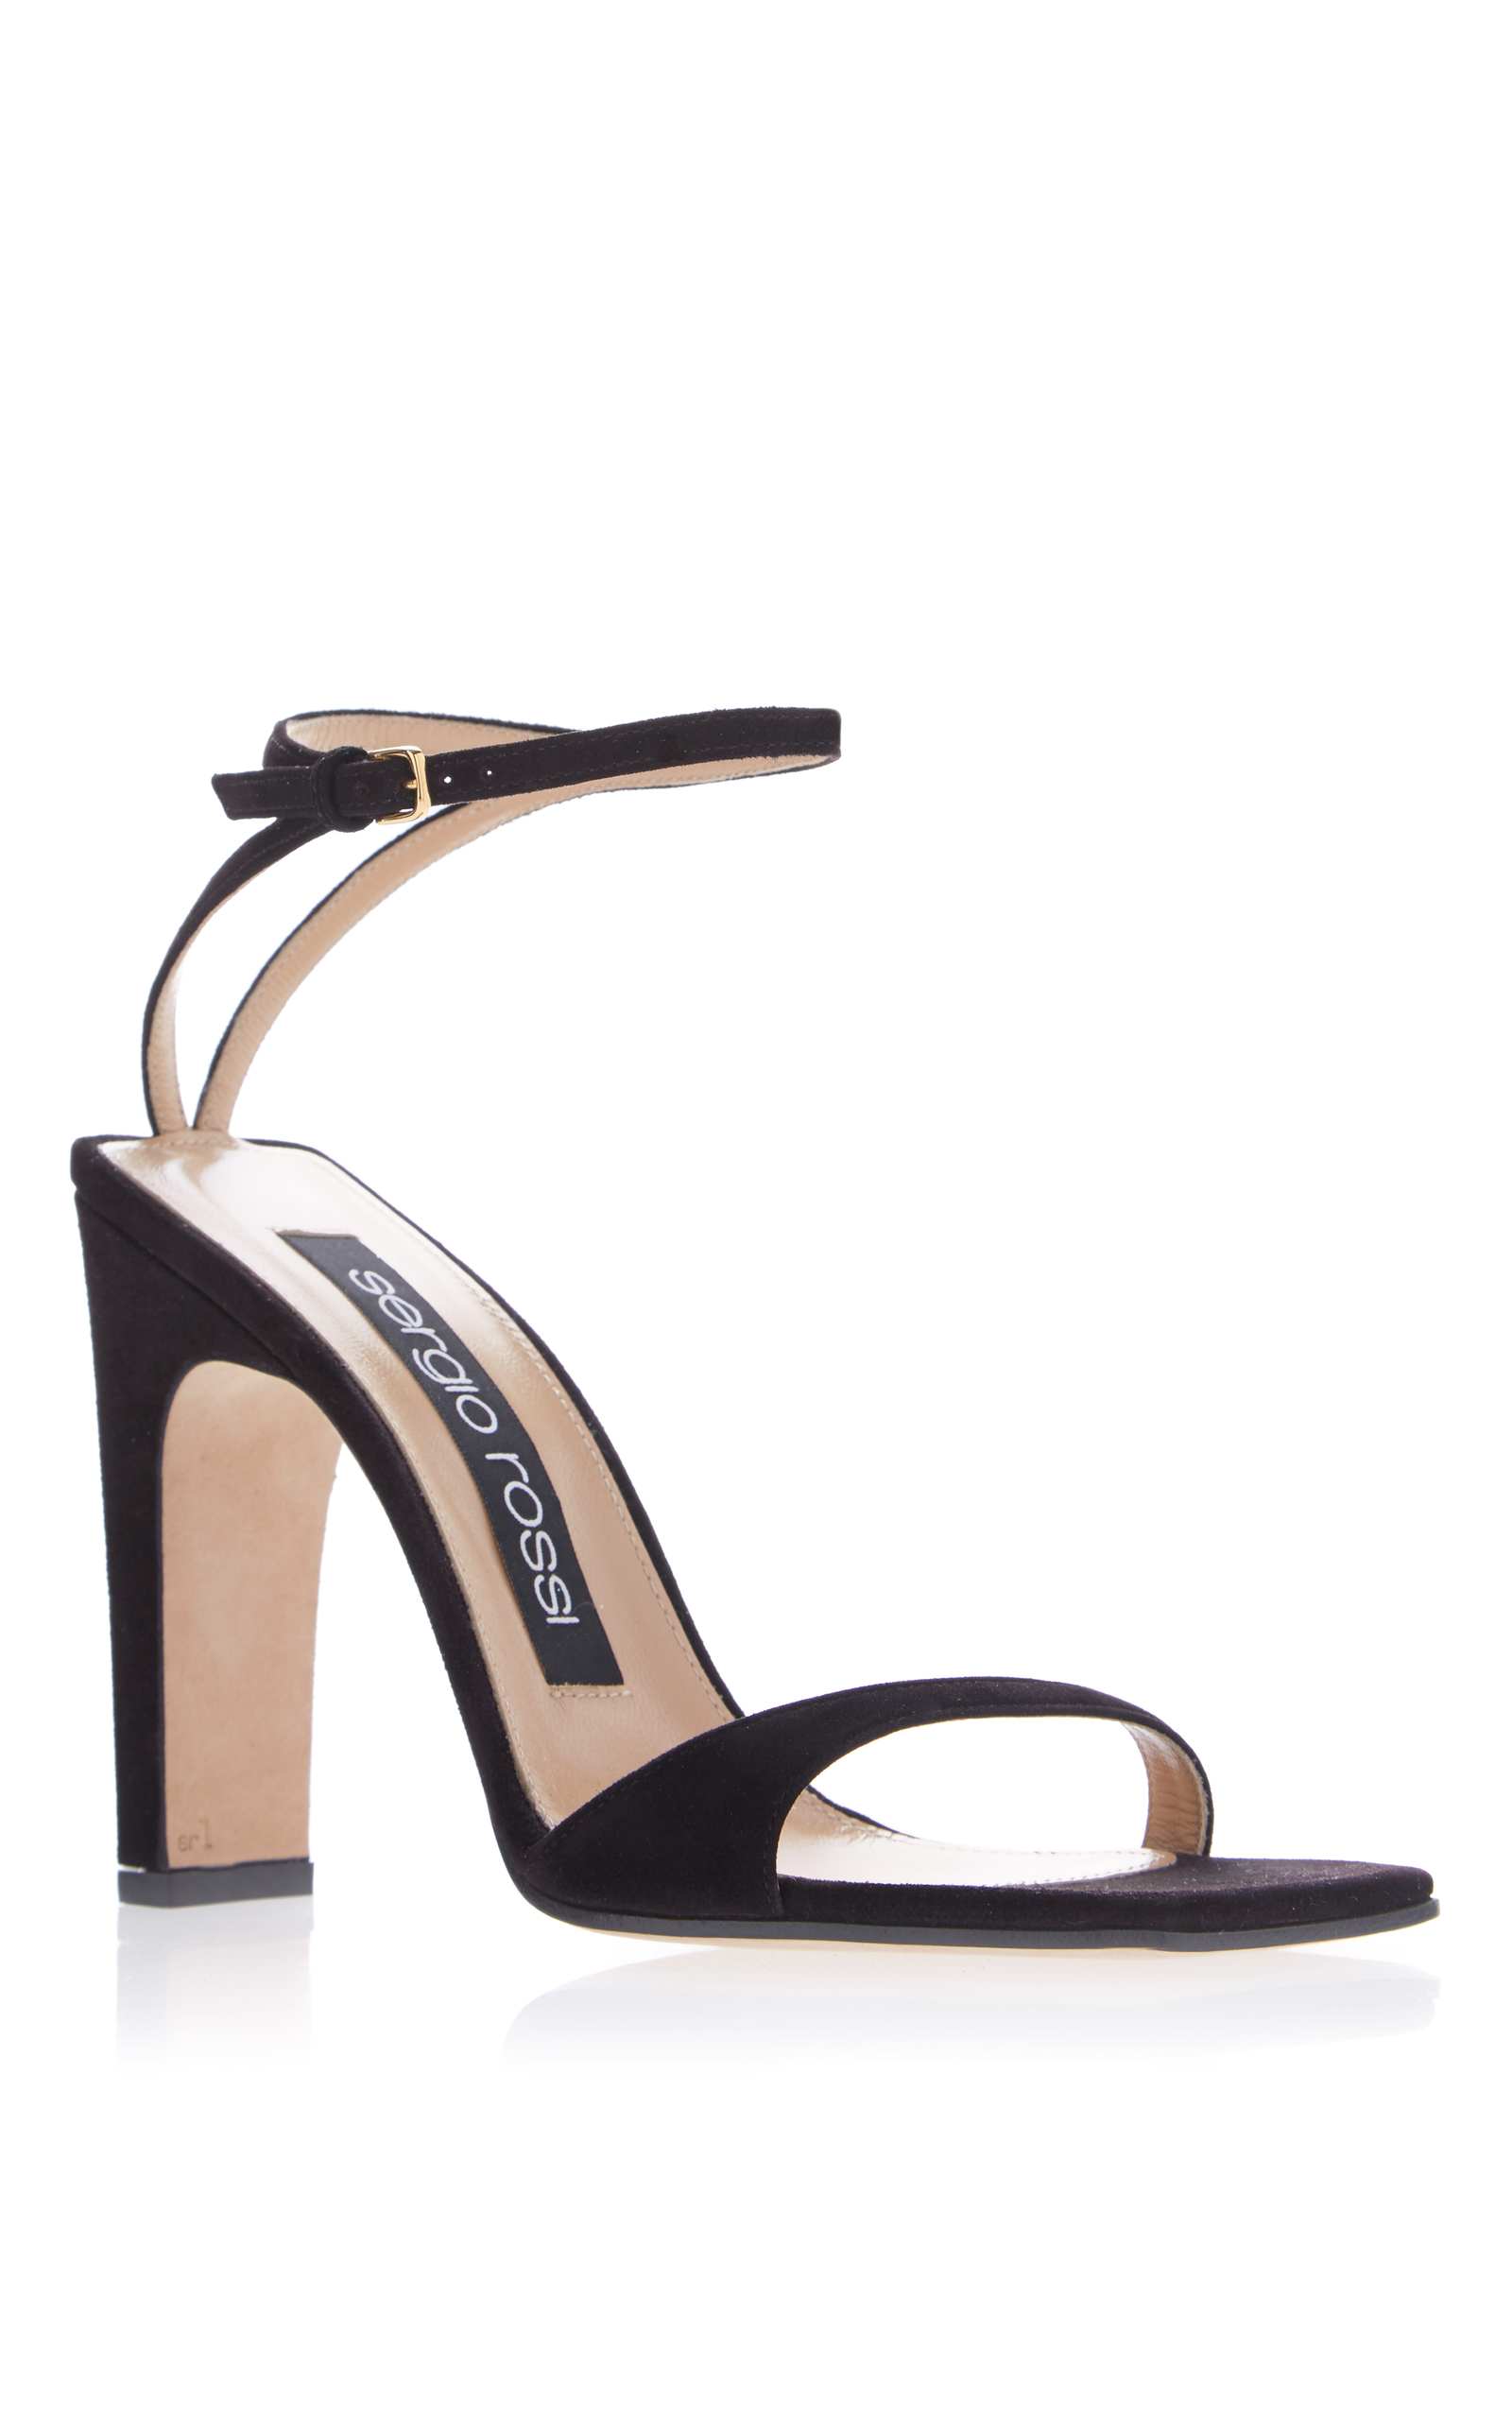 Sergio Rossi Patent Leather Slingback Sandals discount visit WNf6YZENG